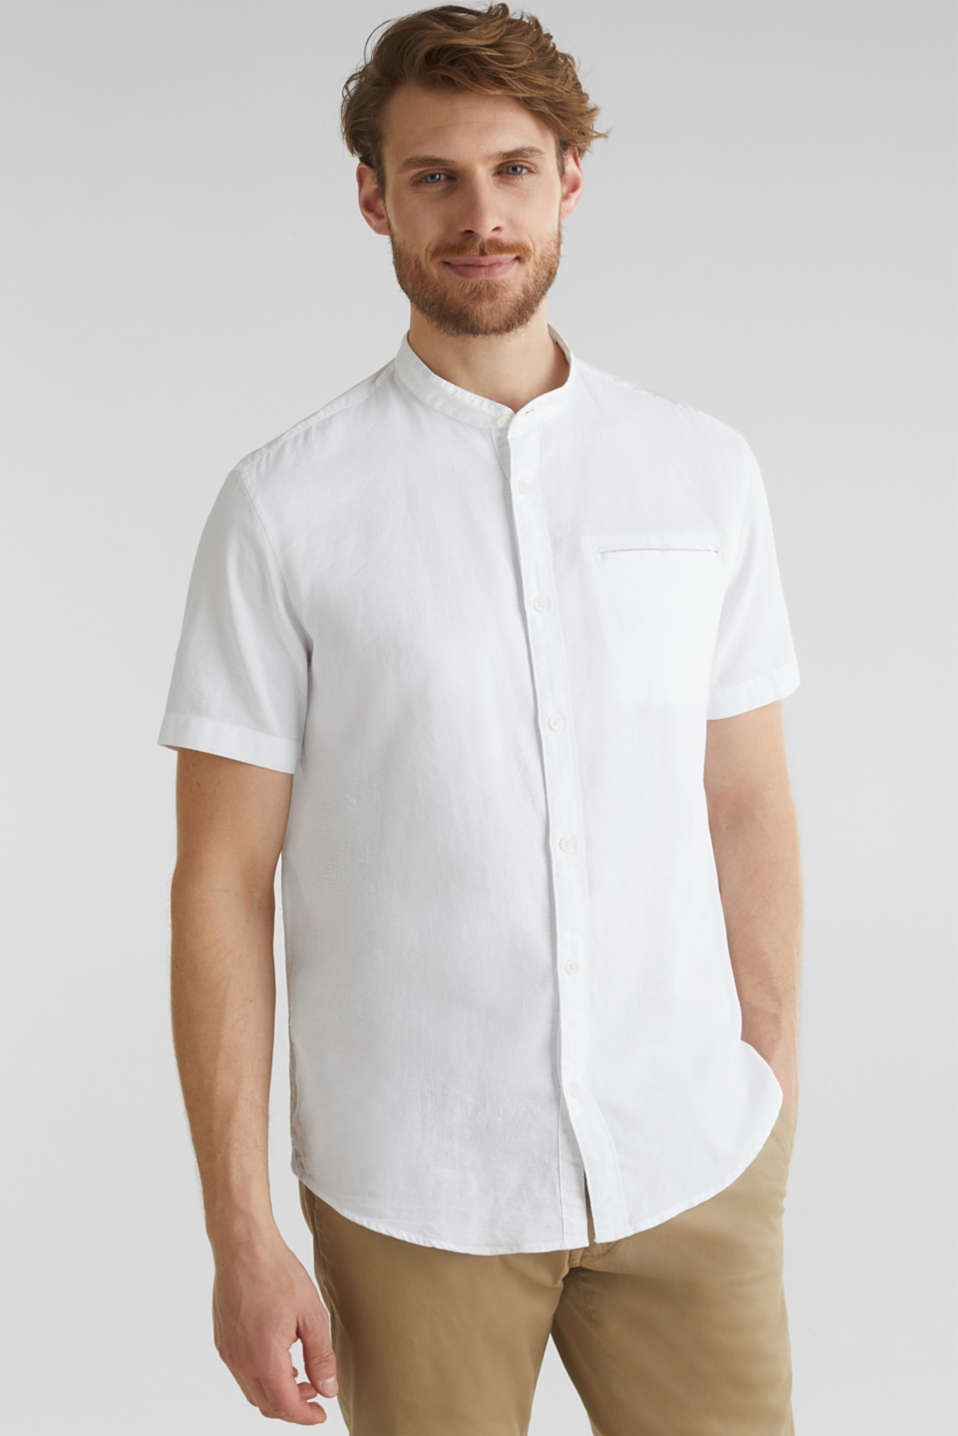 Esprit - Camicia in materiale misto, 100% cotone biologico